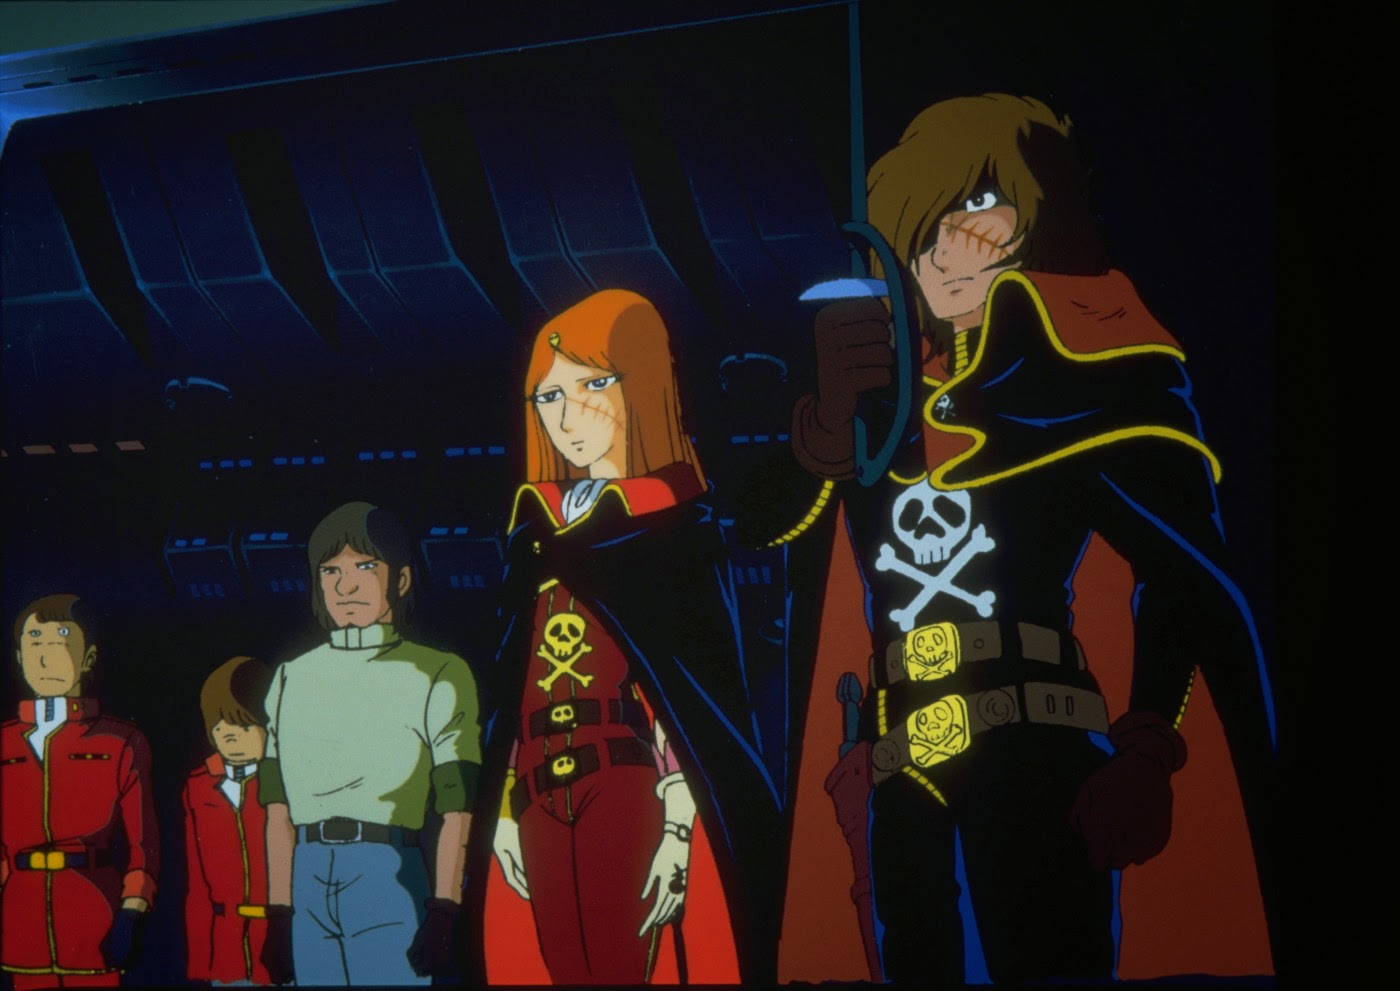 YAMATO VIDEO, NOVITA' SU CAPITAN HARLOCK AL CINEMA E GOLDRAKE